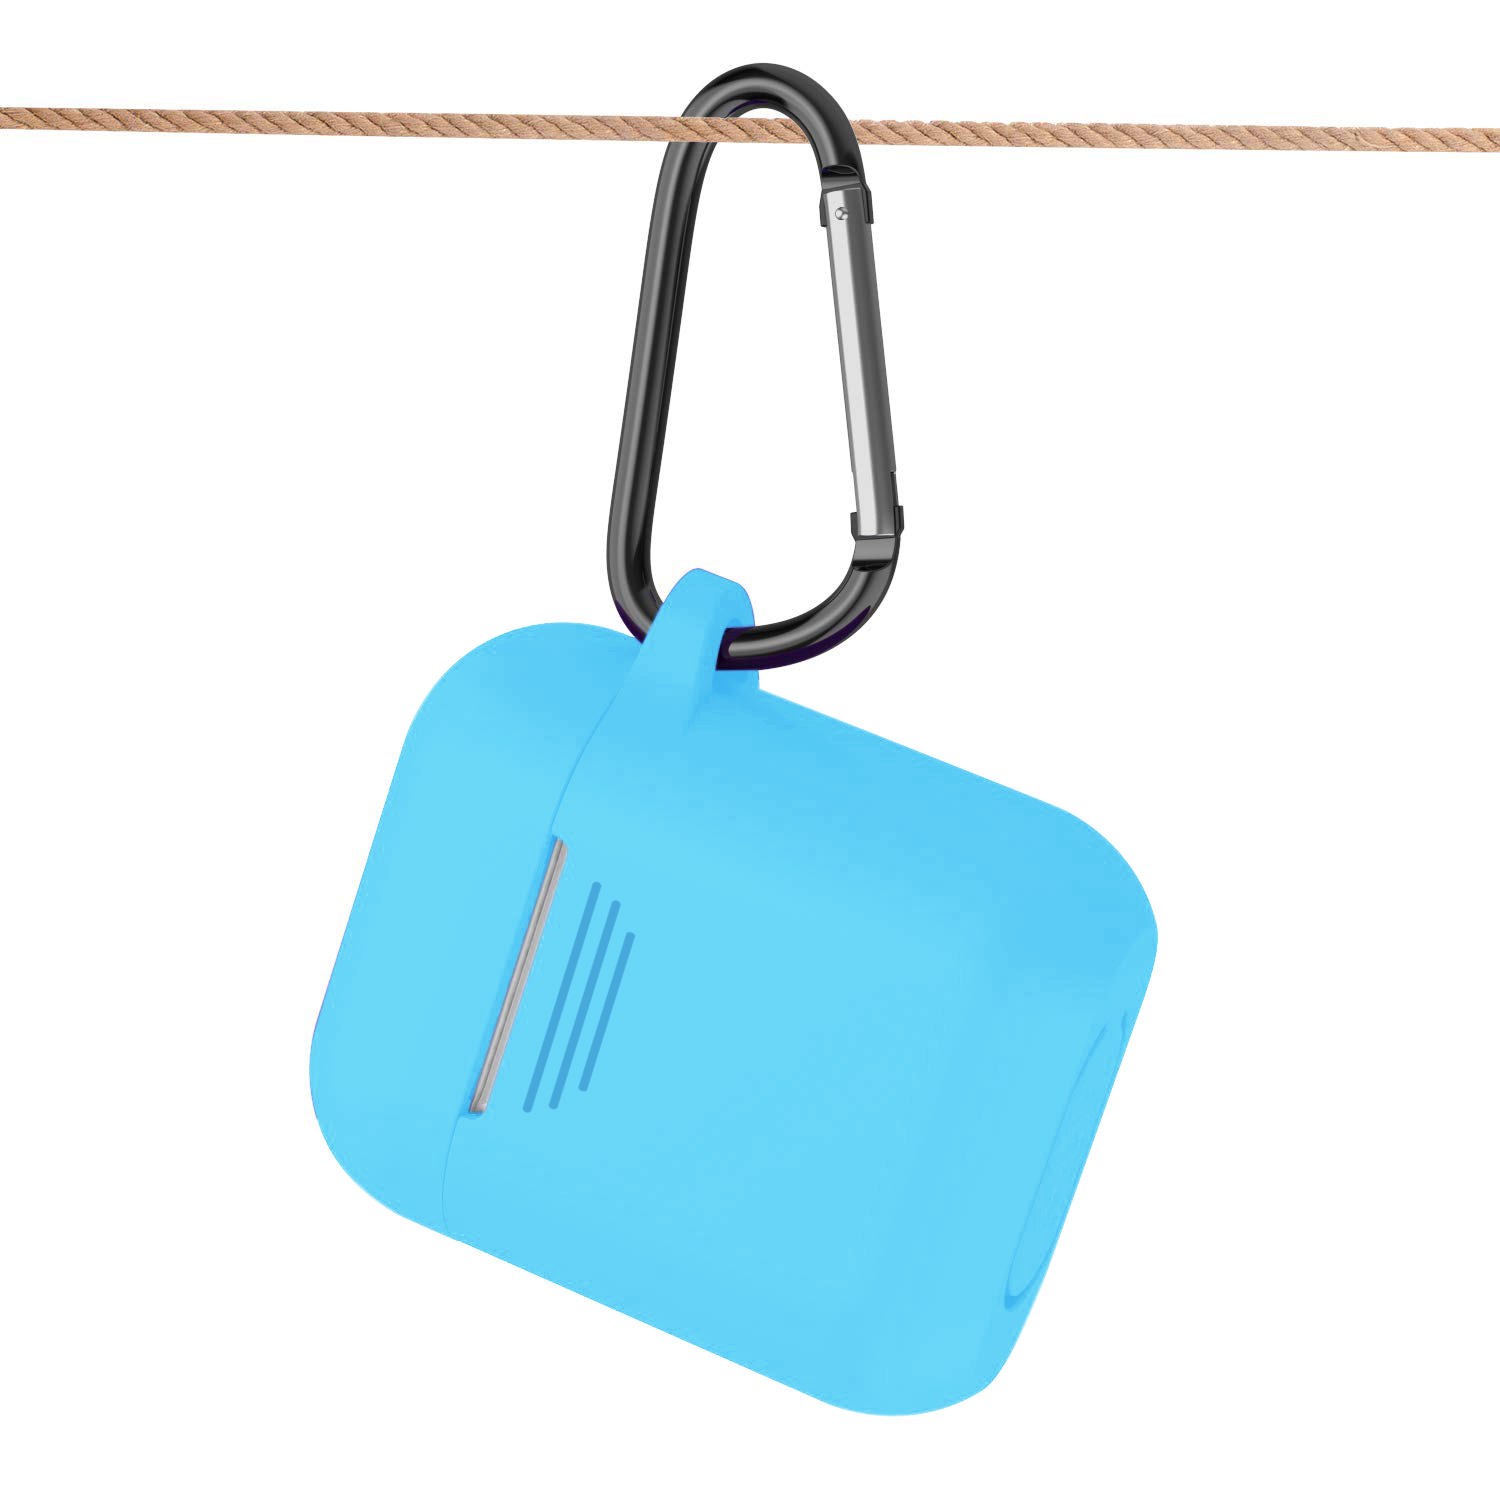 Silicone Case for Airpods in Blue